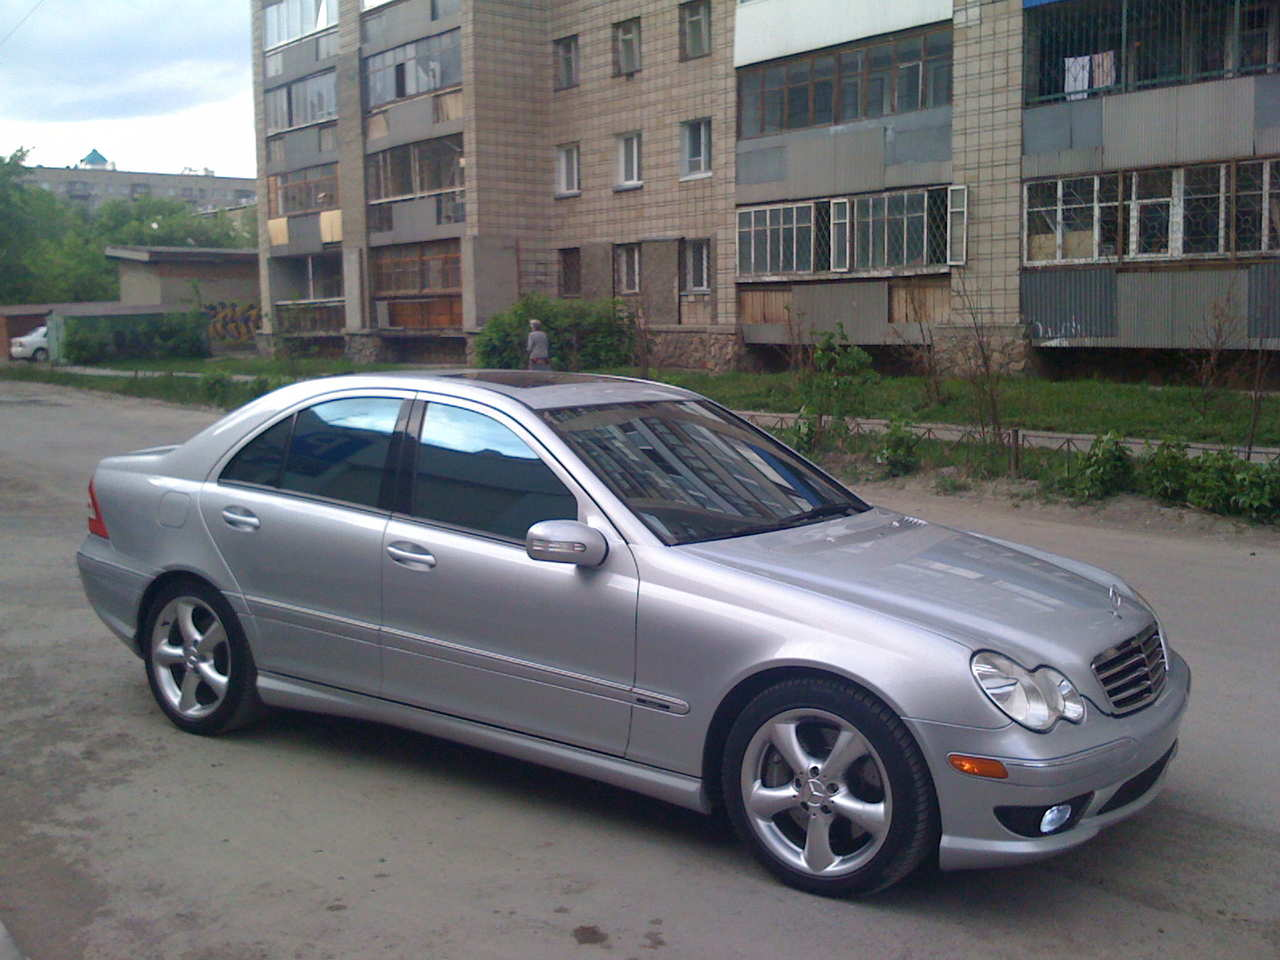 2006 mercedes benz c class image 13 for Mercedes benz c300 2006